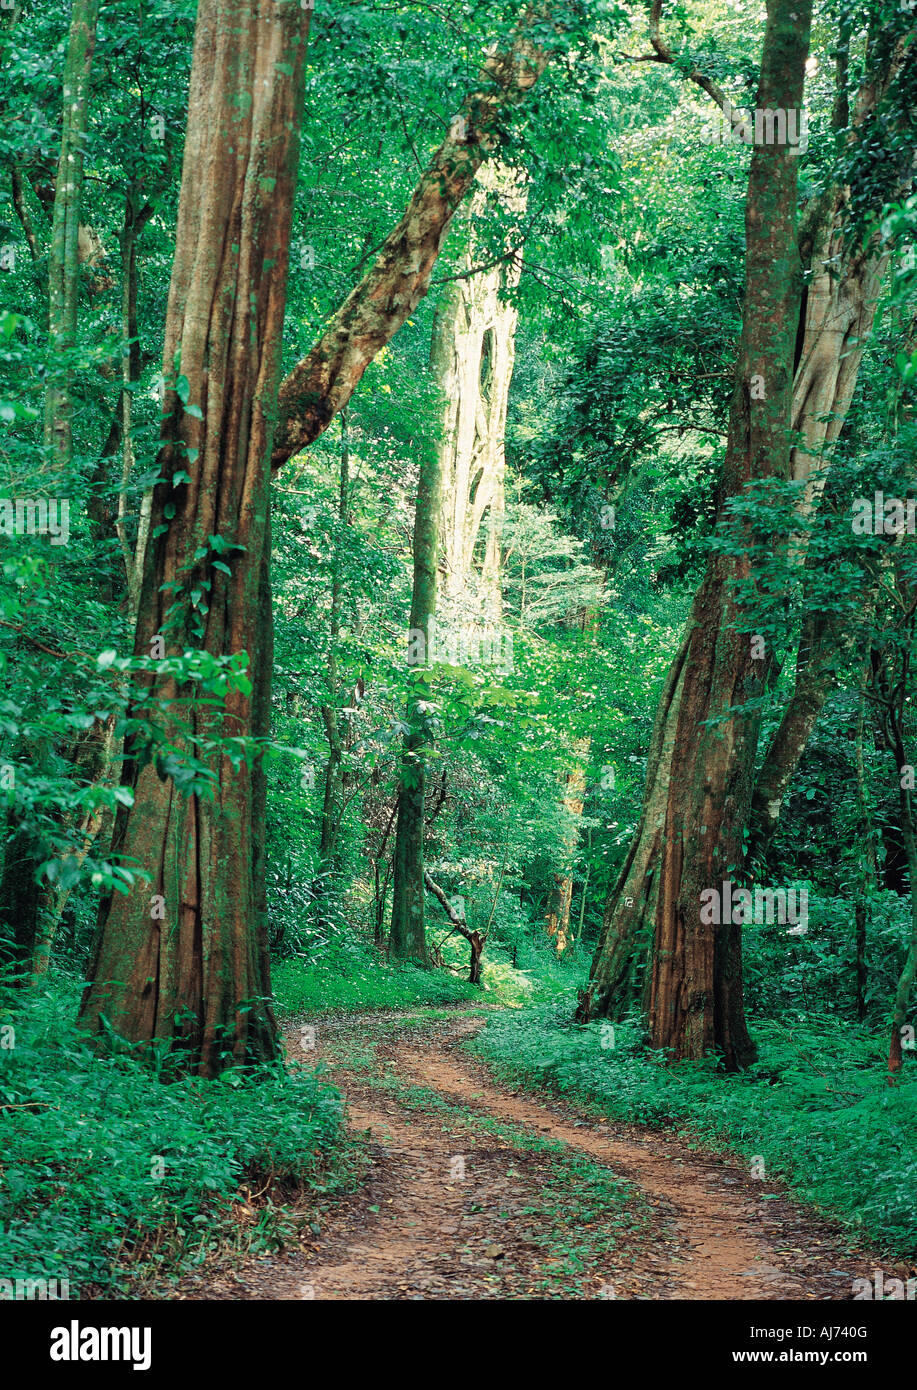 A track through the magnificent Chirinda Forest with tallest trees in Zimbabwe - Stock Image